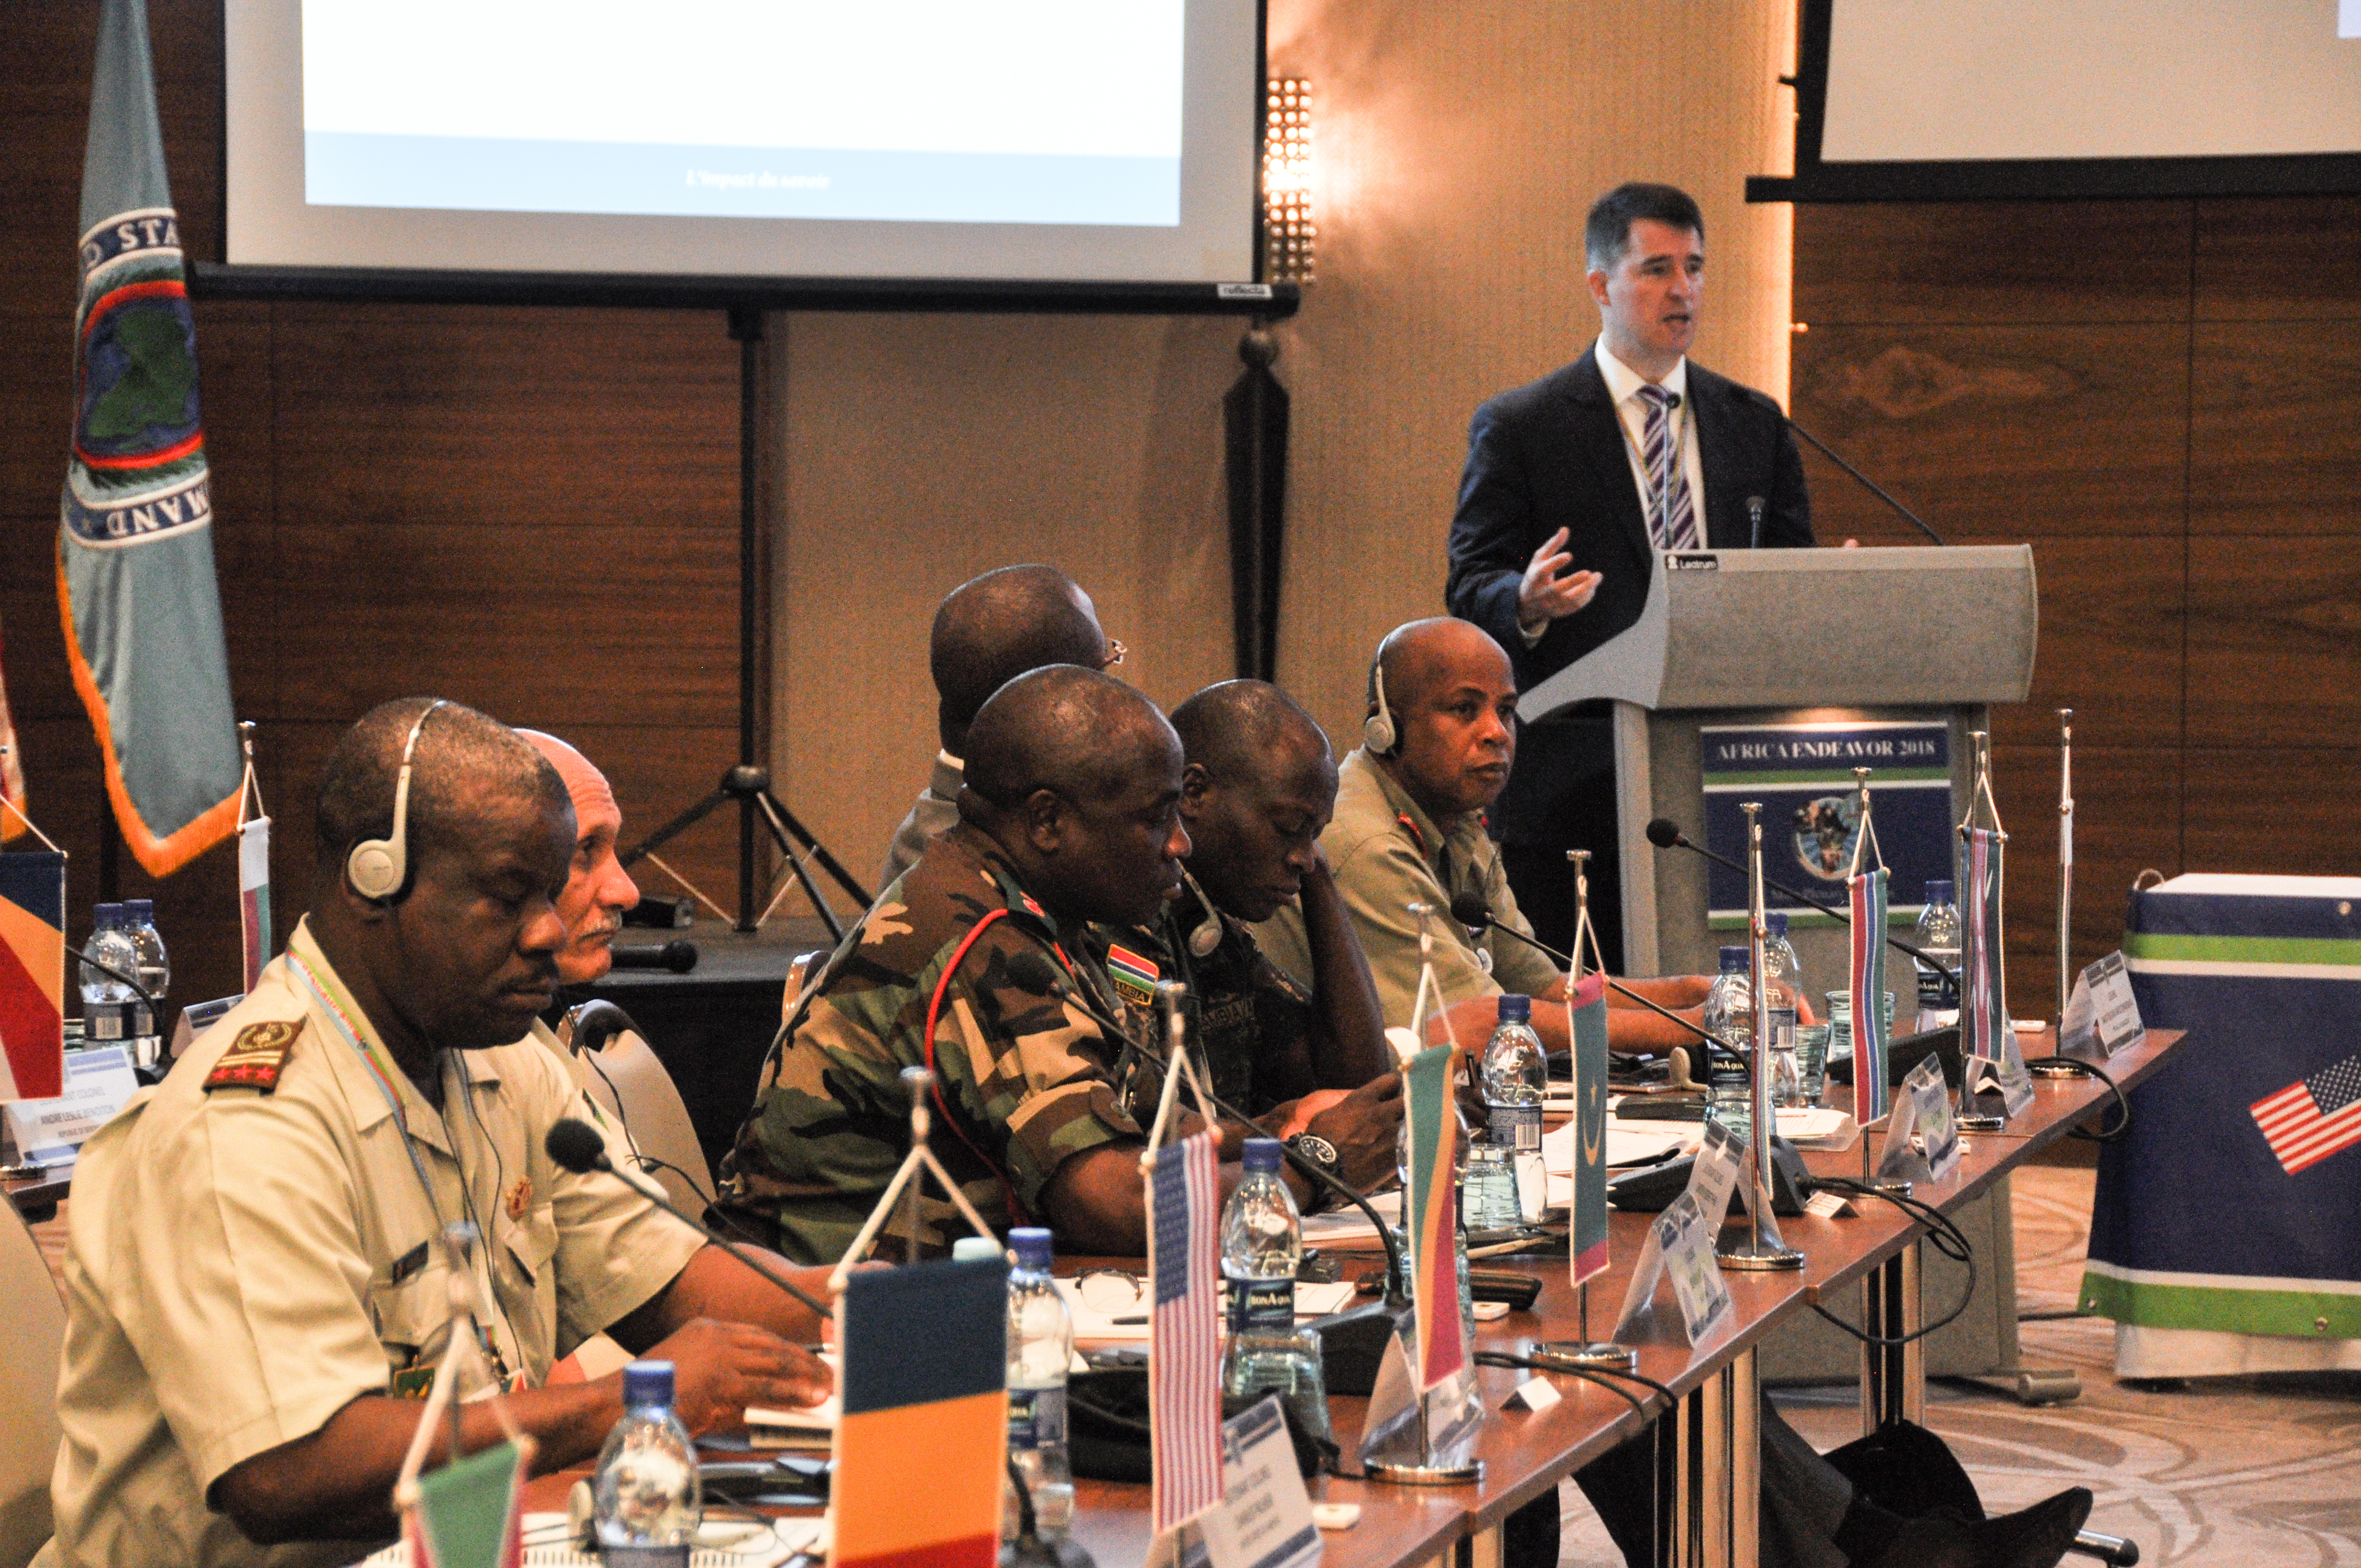 Participants listen to speakers during Africa Endeavor 2018 Aug. 1 in Santa Maria, Sal, Cabo Verde. Africa Endeavor is an annual senior leader and communications symposium designed to help develop multinational communications practices for peacekeeping, disaster response and counter violent extremist organization operations mandated by the African Union and the United Nations.